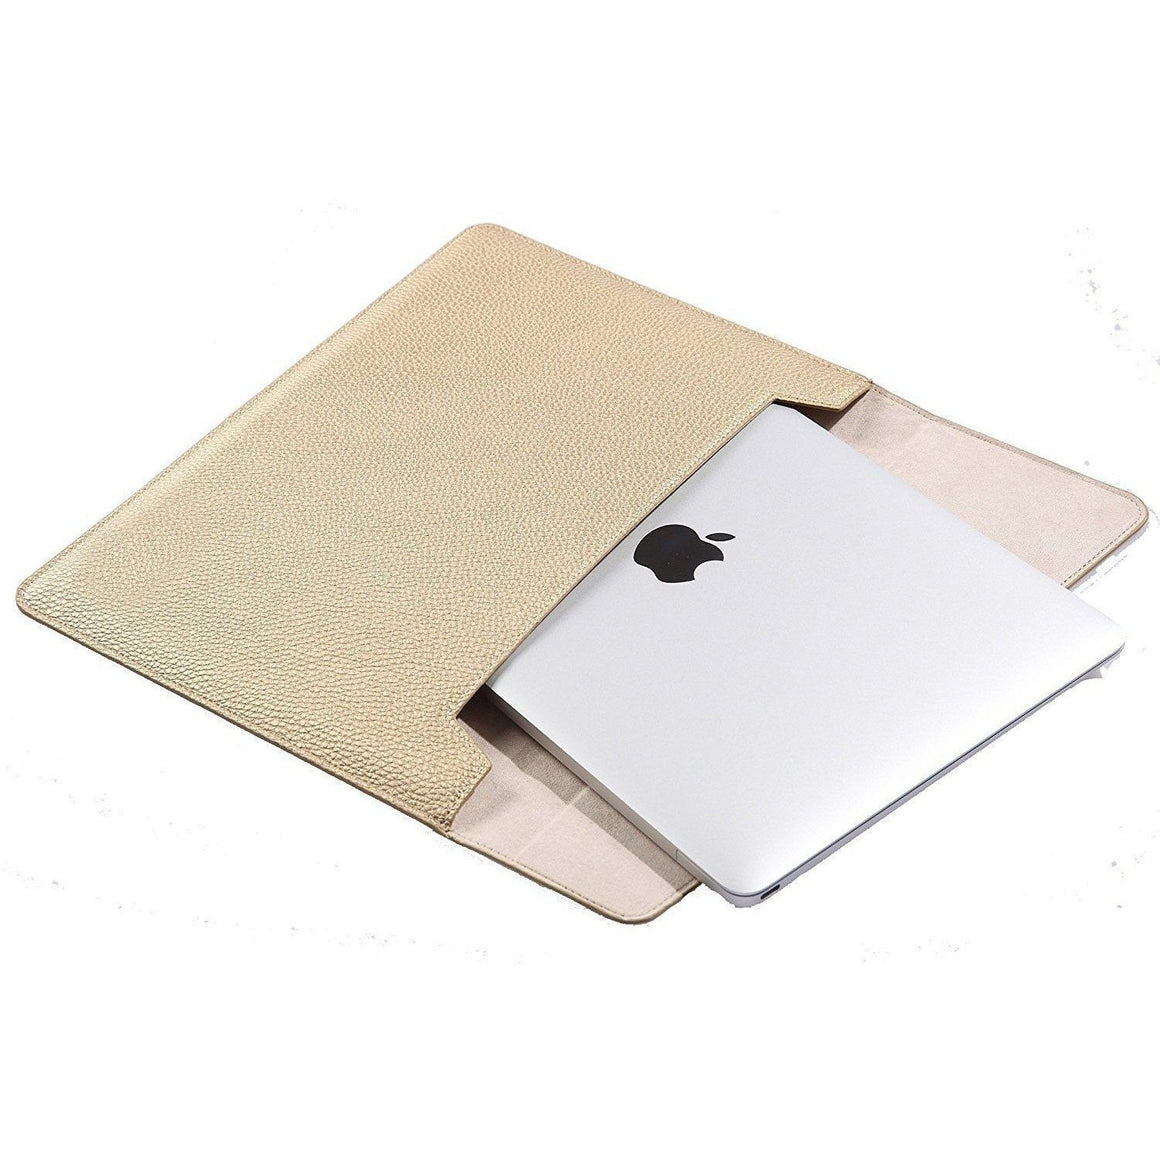 "MoArmouz - Lichi PU Leather Sleeve for 12"" New MacBook"